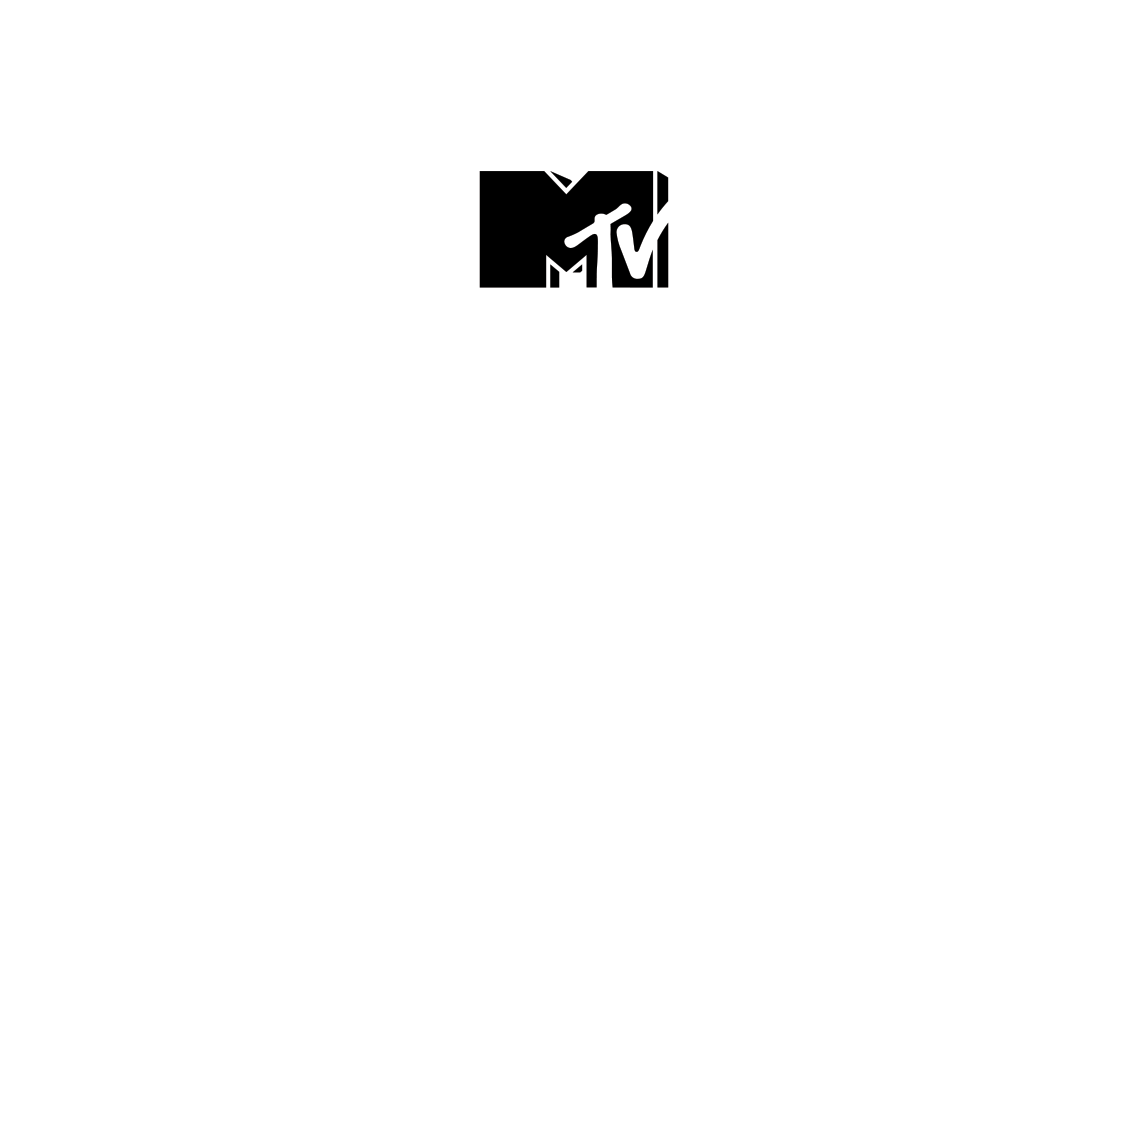 MTV RE:DEFINE